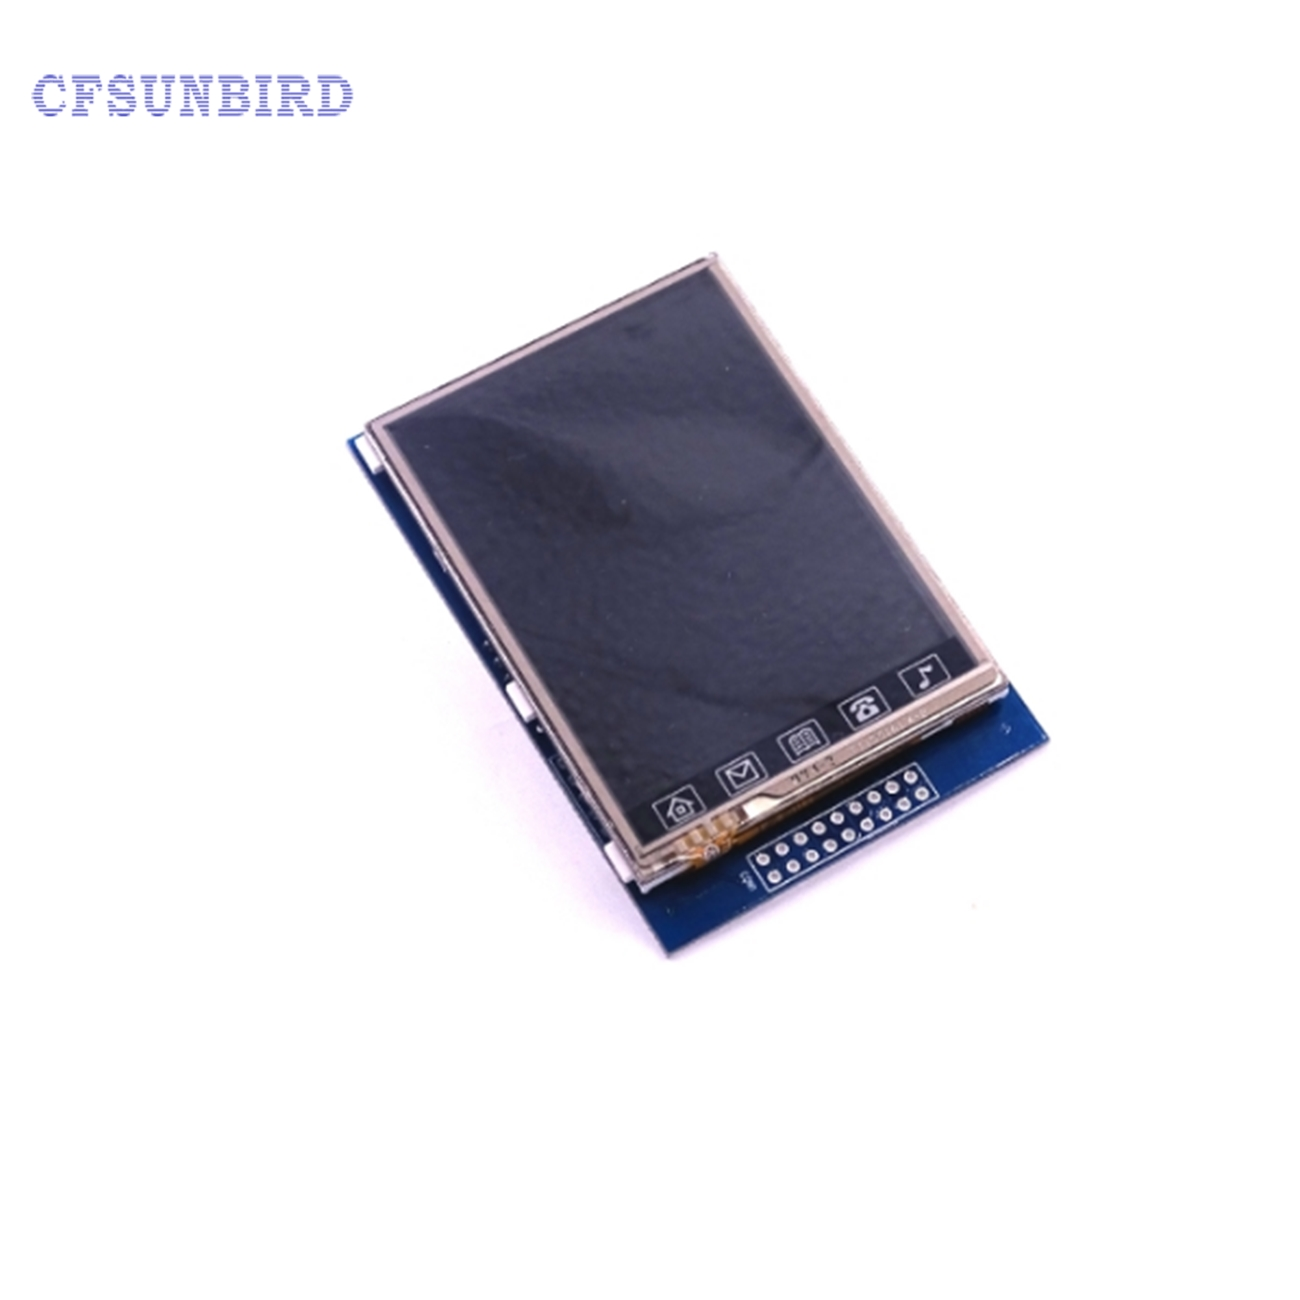 Free shipping! LCD Display Module TFT 2.8 inch TFT LCD screen for Arduin UNO R3 Board 6inch display lcd screen for onyx boox c67sml columbus lcd display free shipping